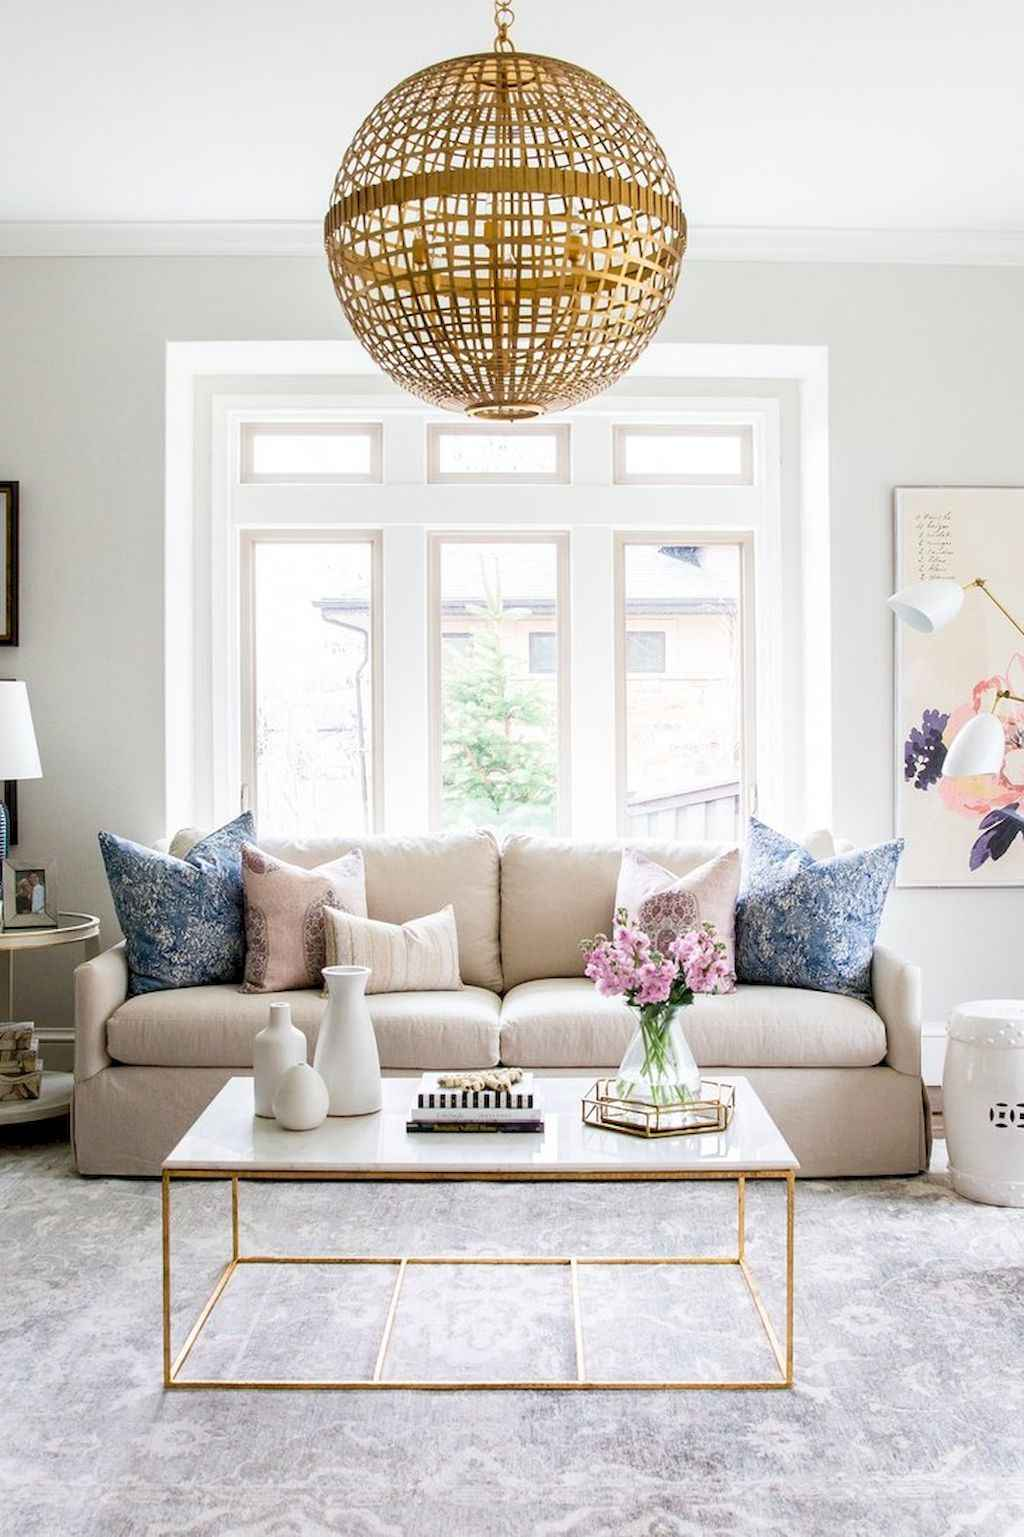 Couples first apartment decorating ideas (63)